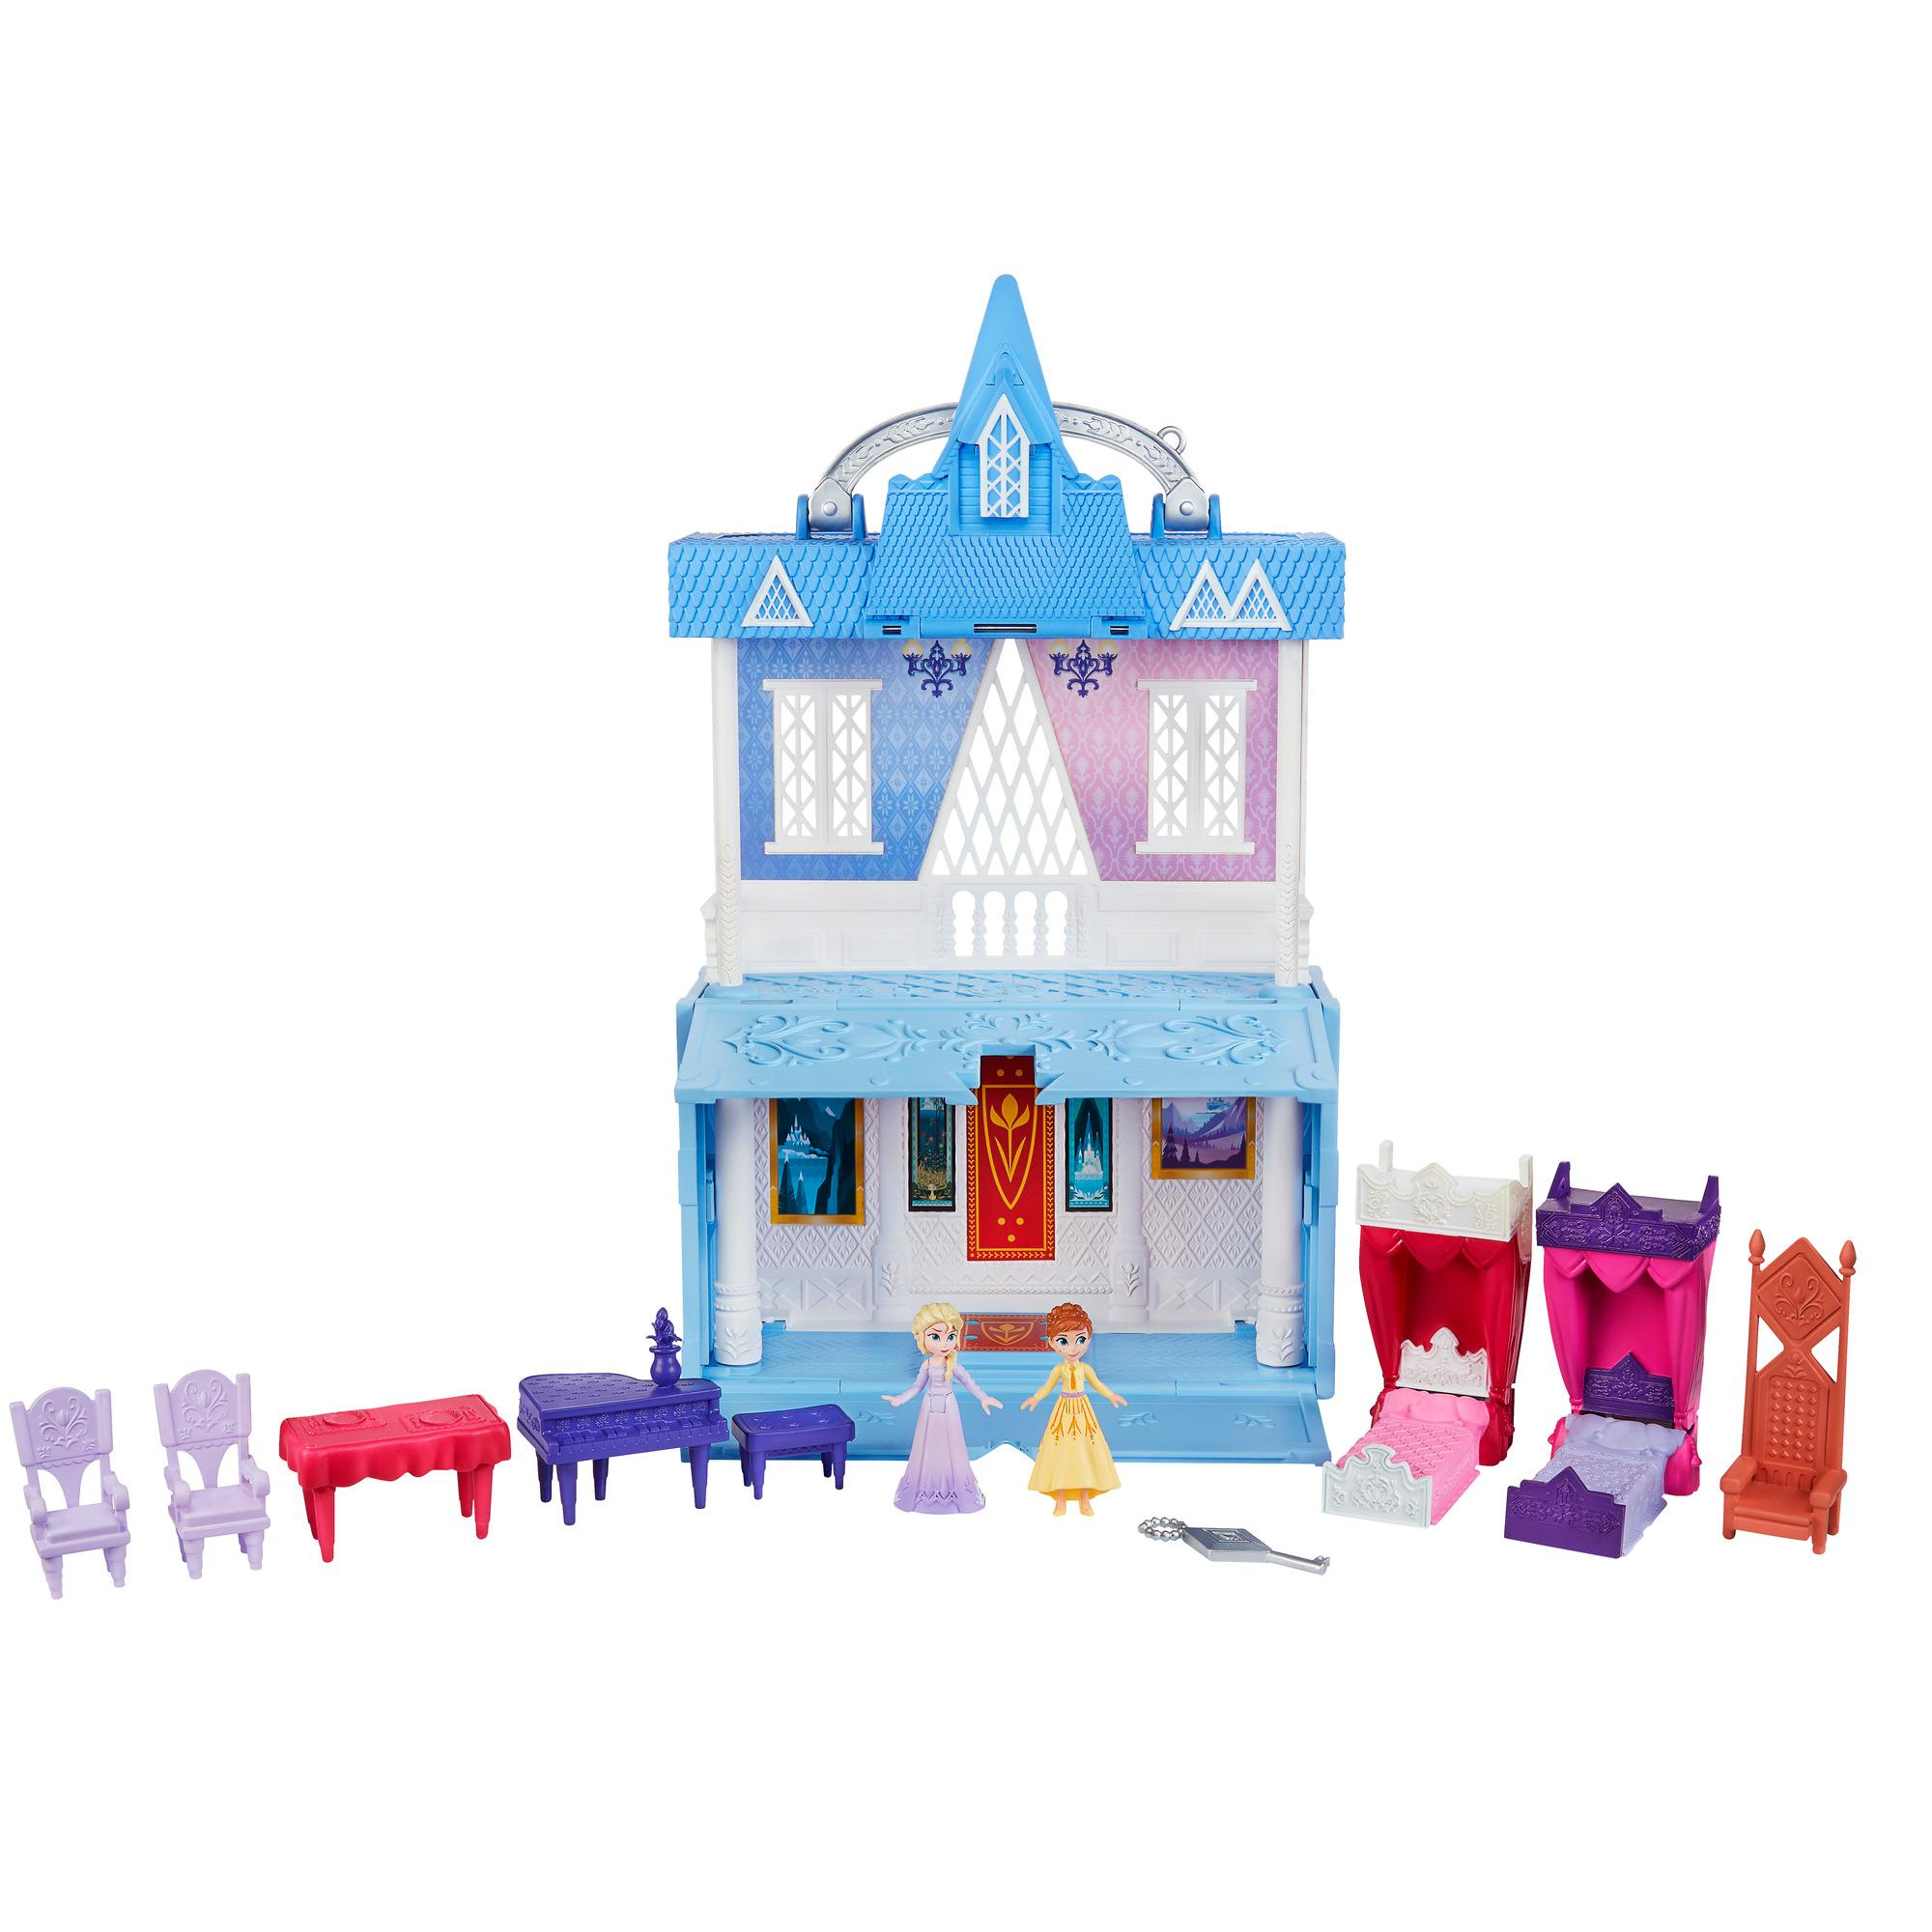 POP UP Mini château